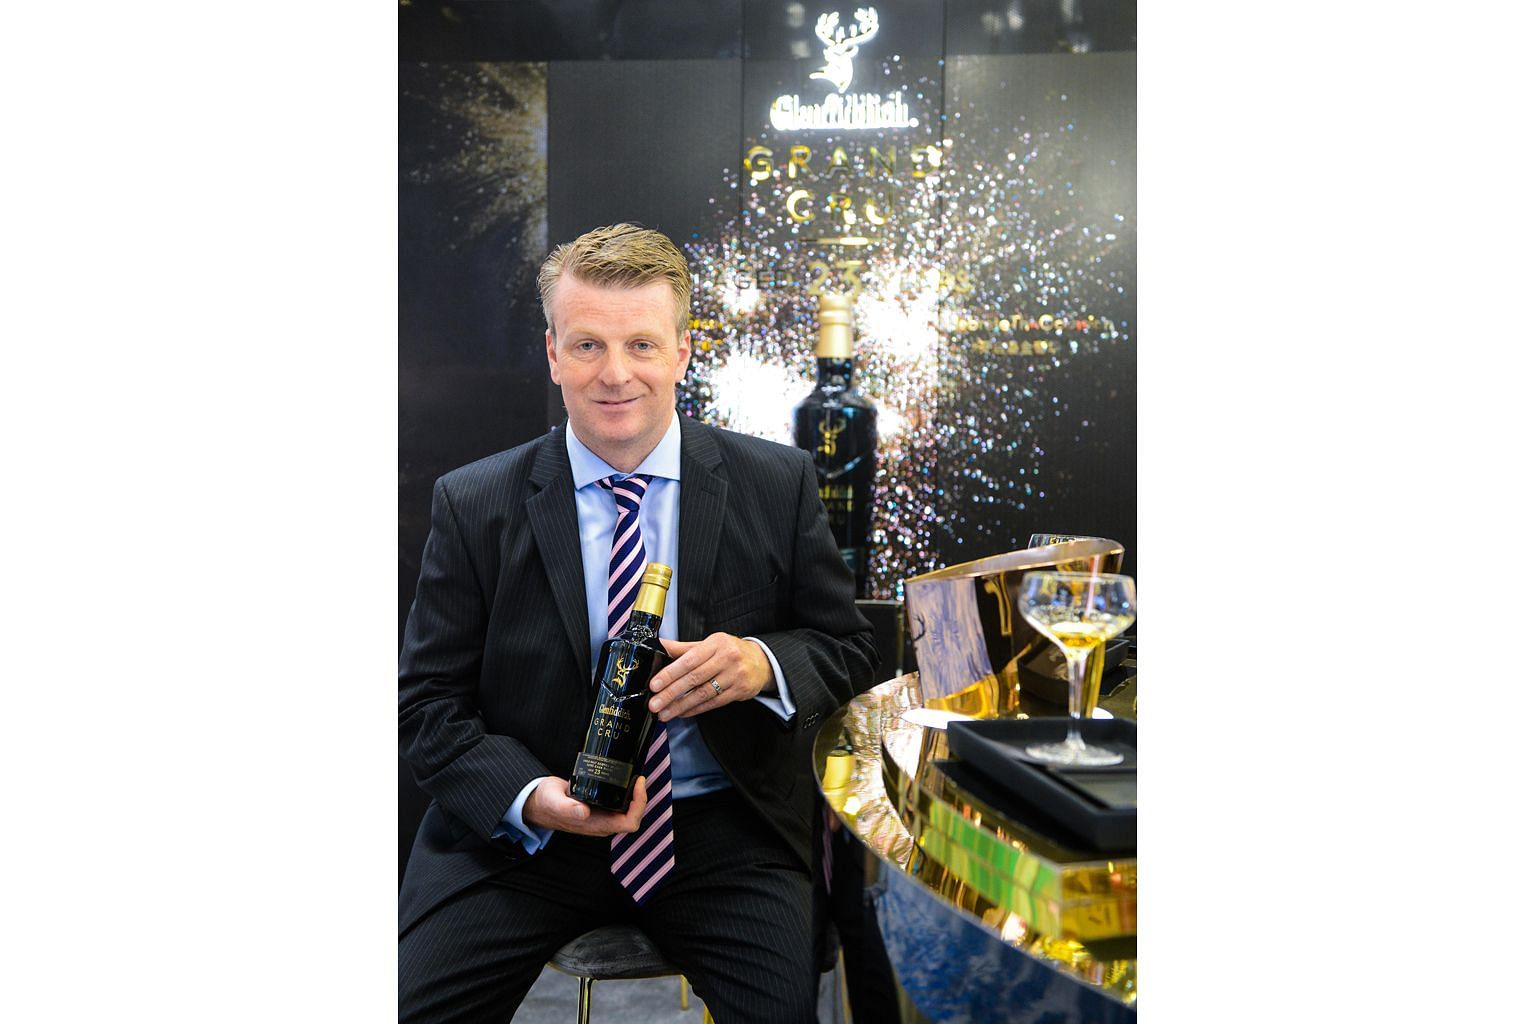 Glenfiddich's malt master Brian Kinsman was part of the team that created Grand Cru, which brings together premium single malt scotch whisky and champagne.